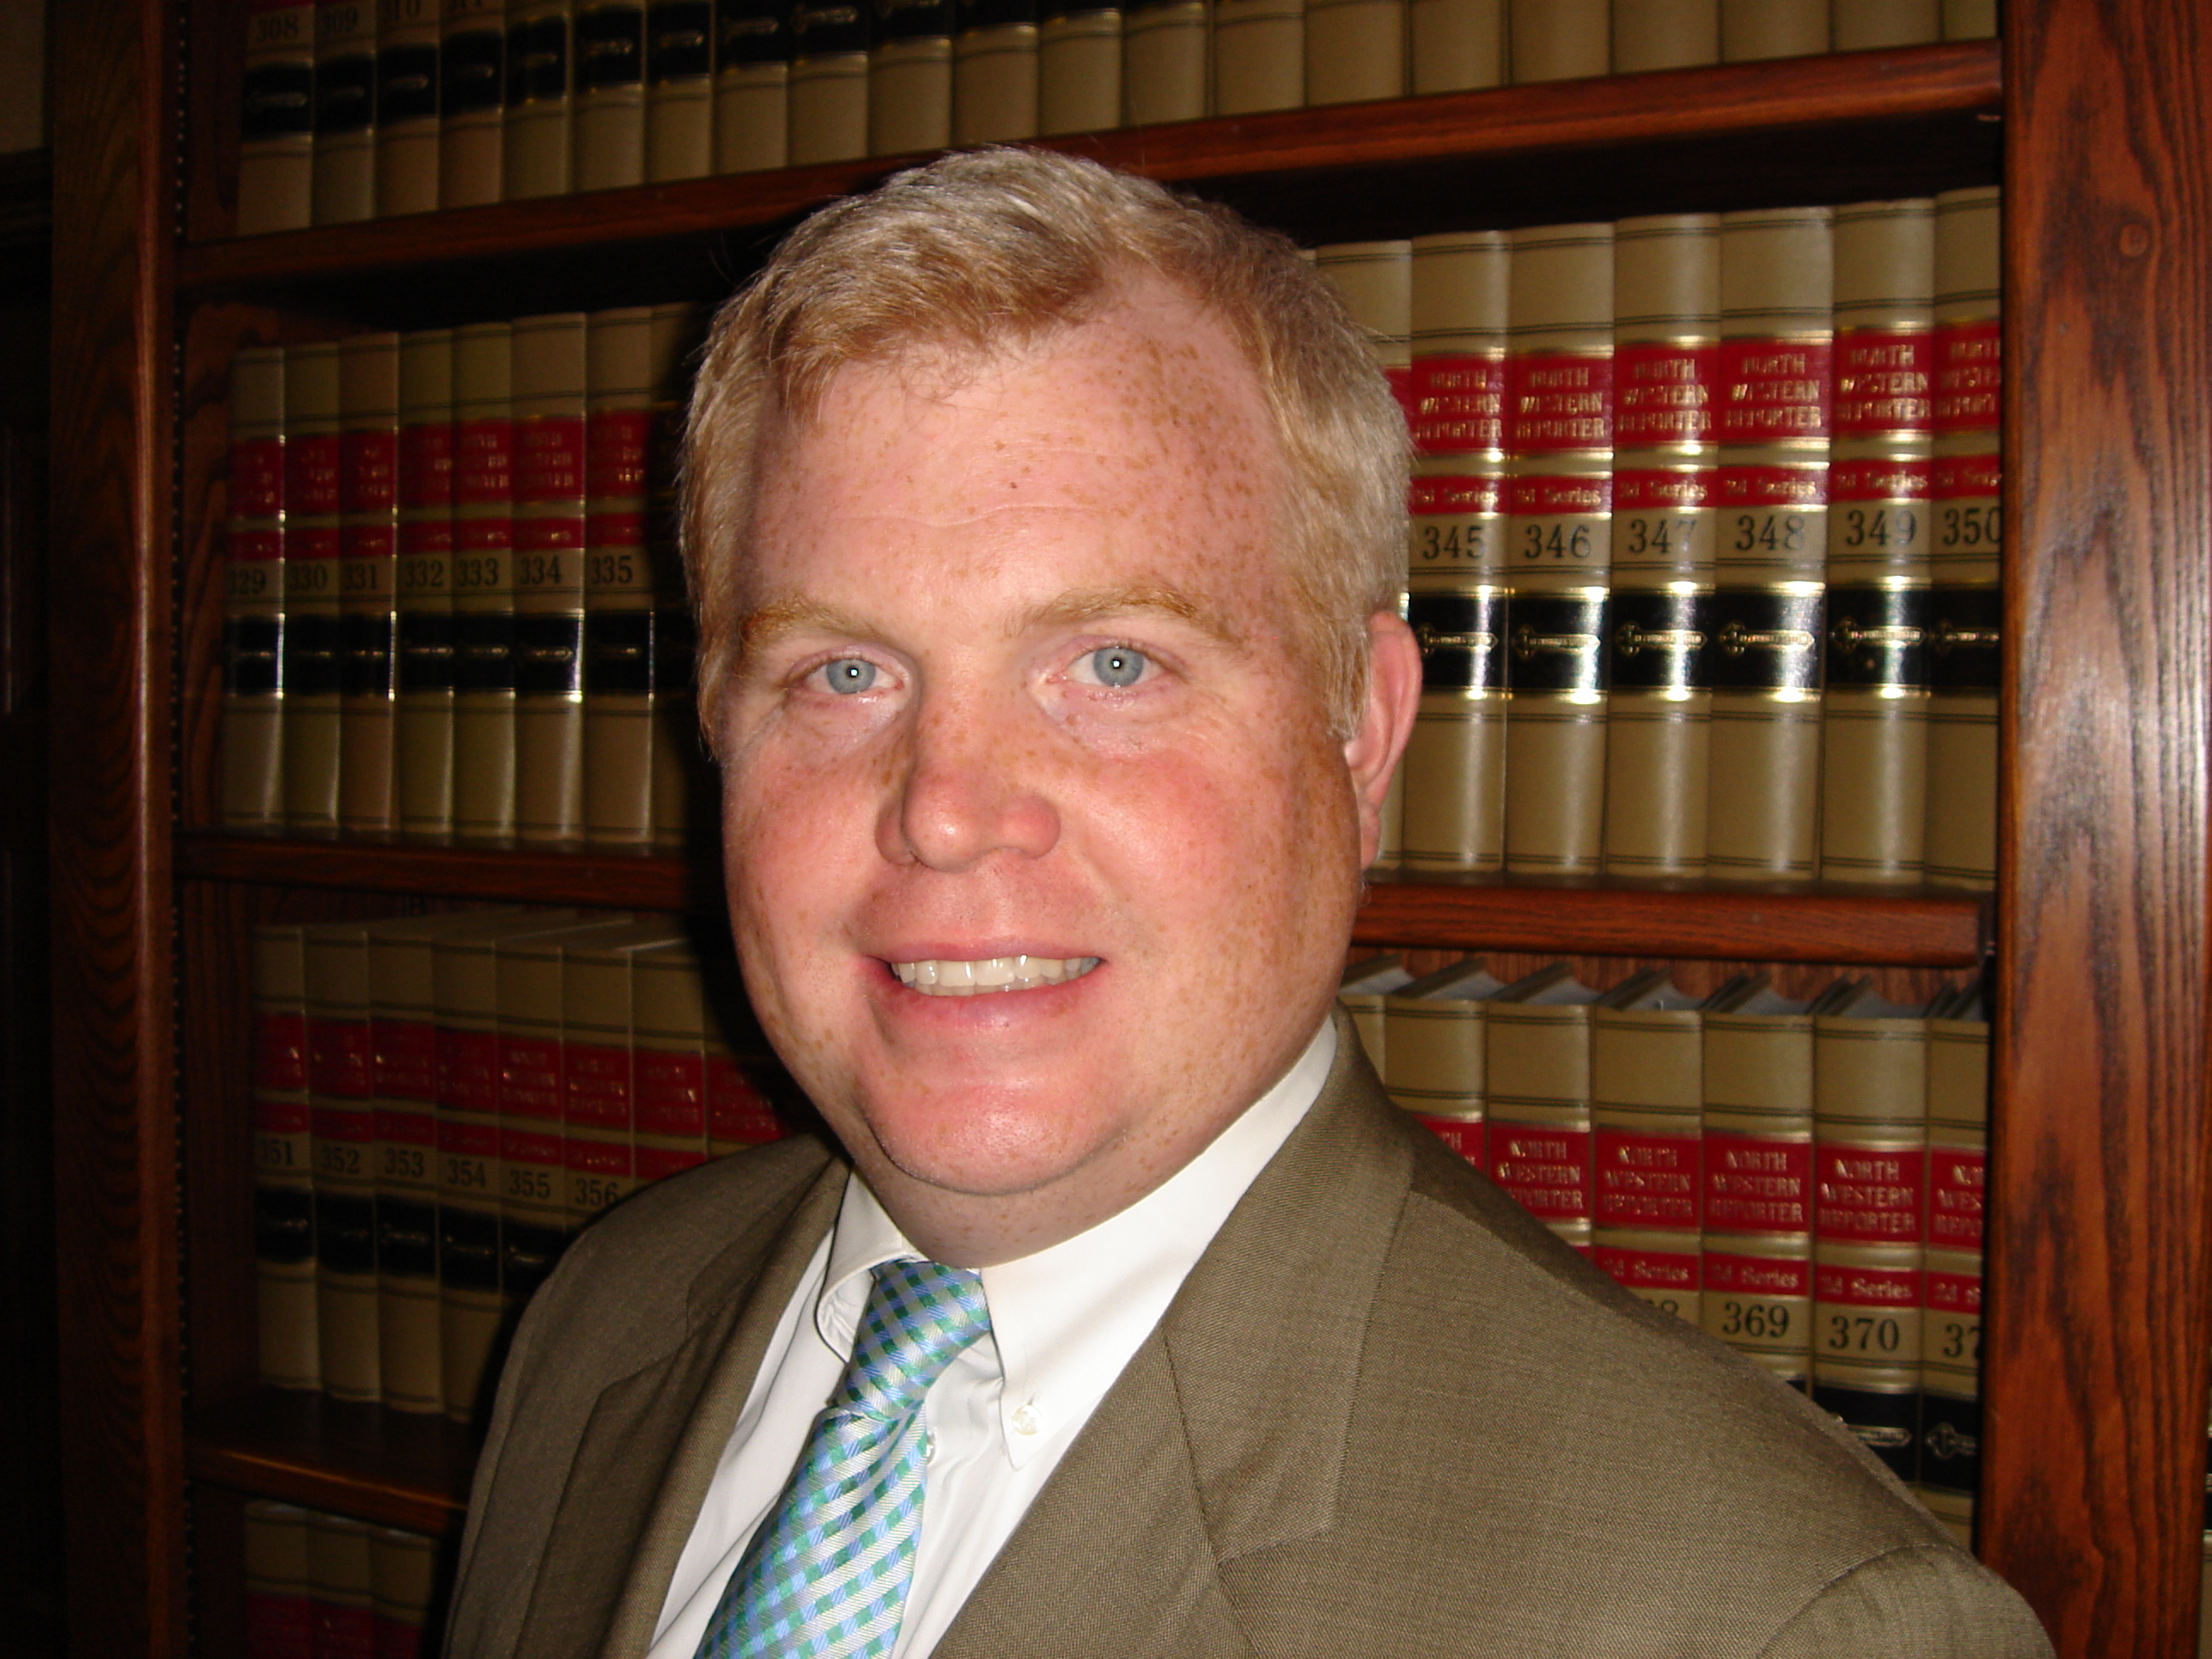 Legal Services in NE Omaha 68104 Cavanaugh Law Firm, PC, LLO 6035 Binney St Suite 100  (402)341-2020